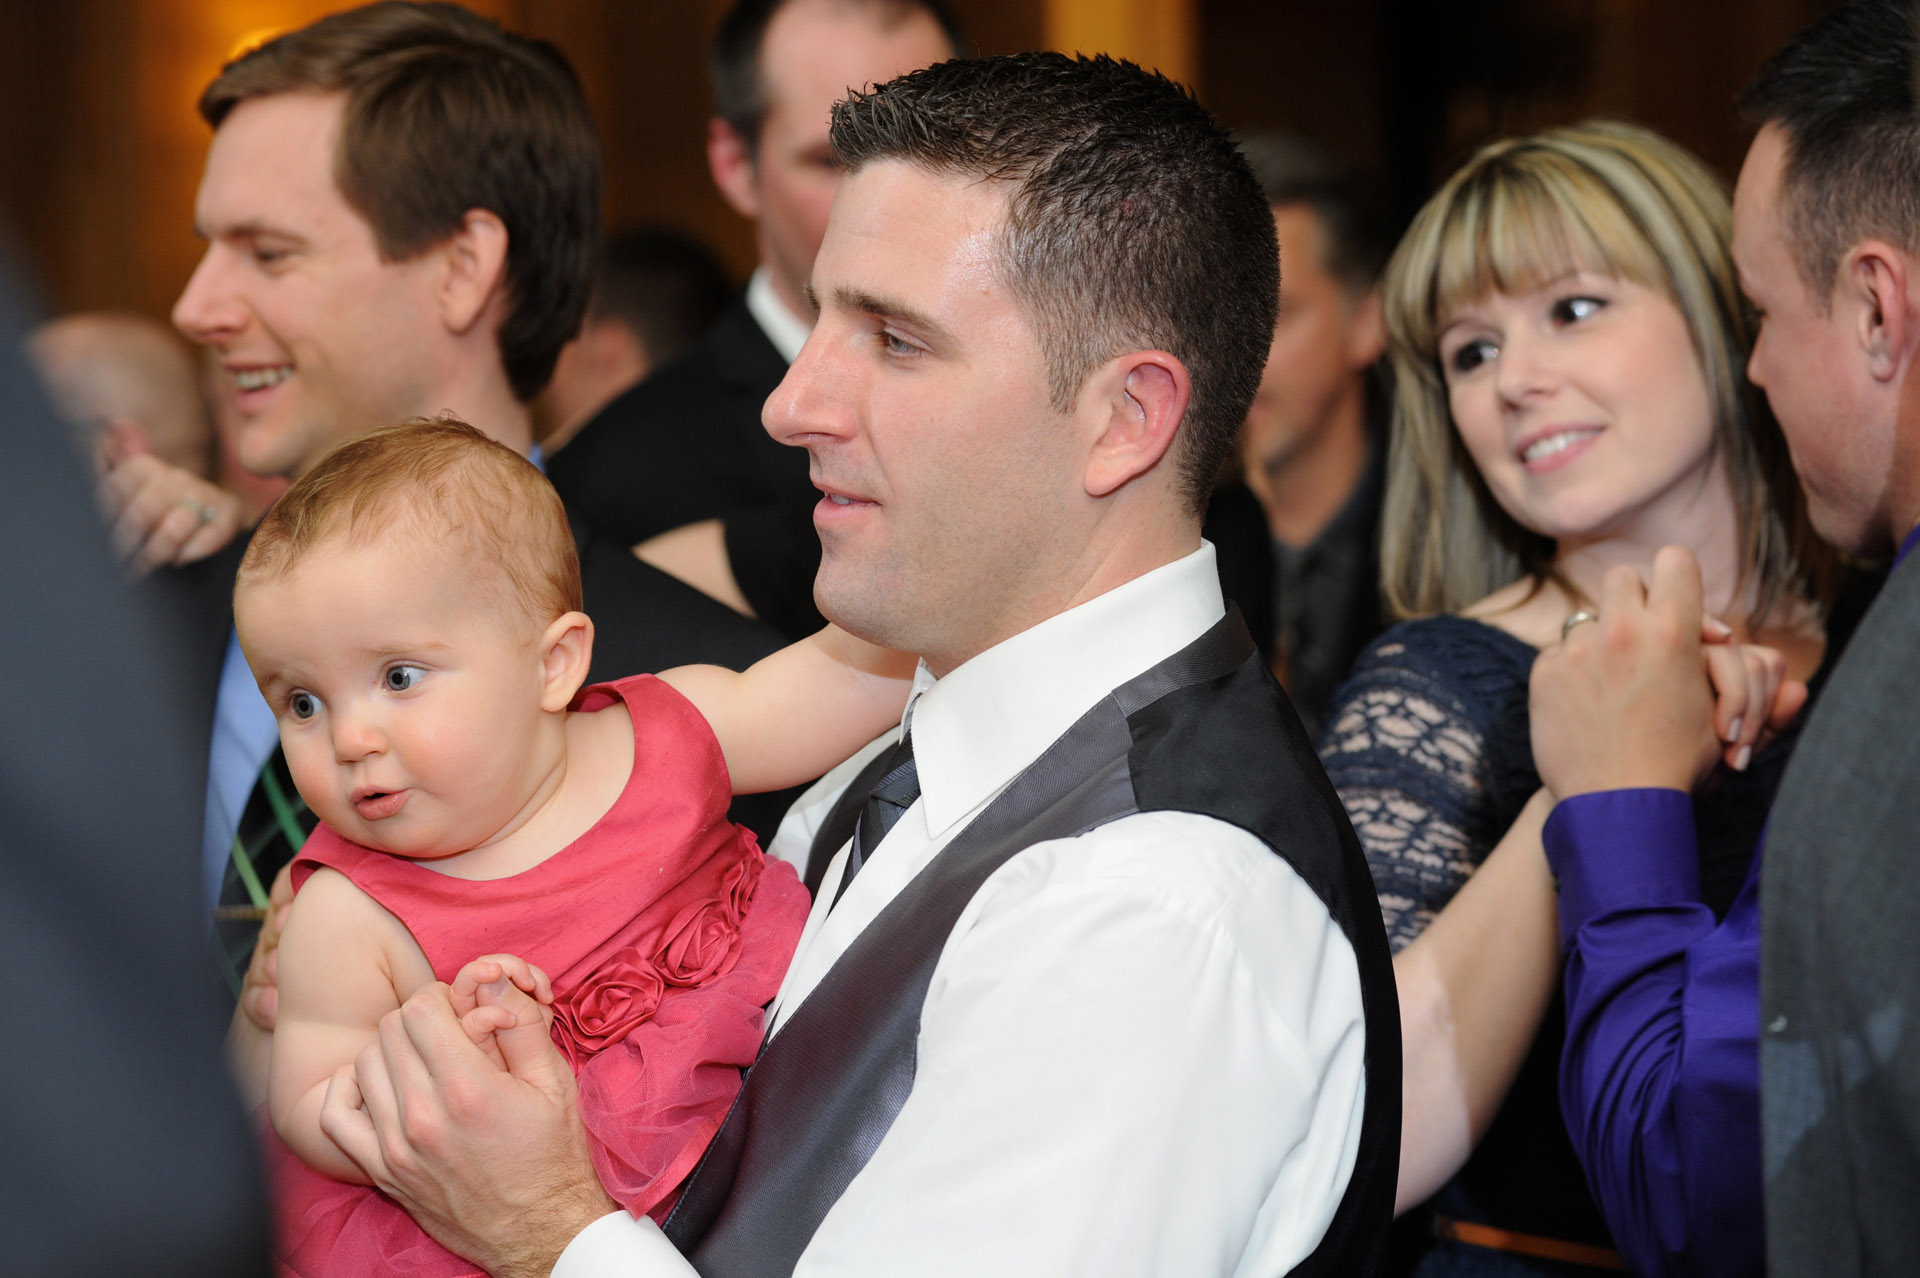 Michigan wedding in Detroit, Michigan, featured a photo of a groomsman dancing with his baby during the wedding reception at the Detroit Athletic Club.